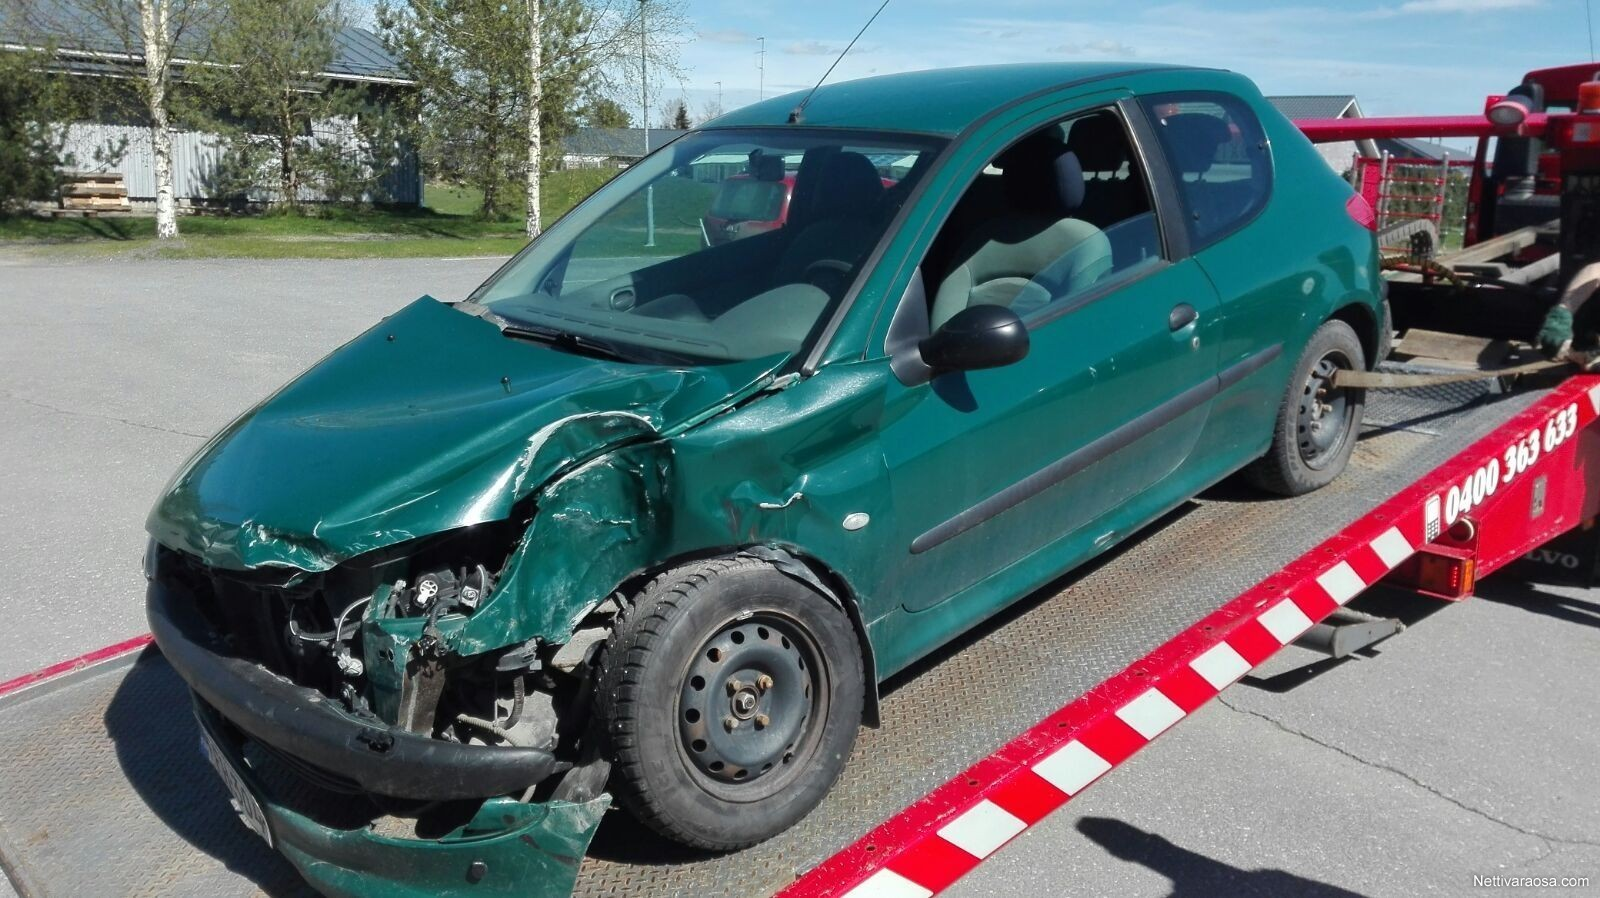 Nettivaraosa - peugeot 206 2002 - Spare- and crash cars - Nettivaraosa